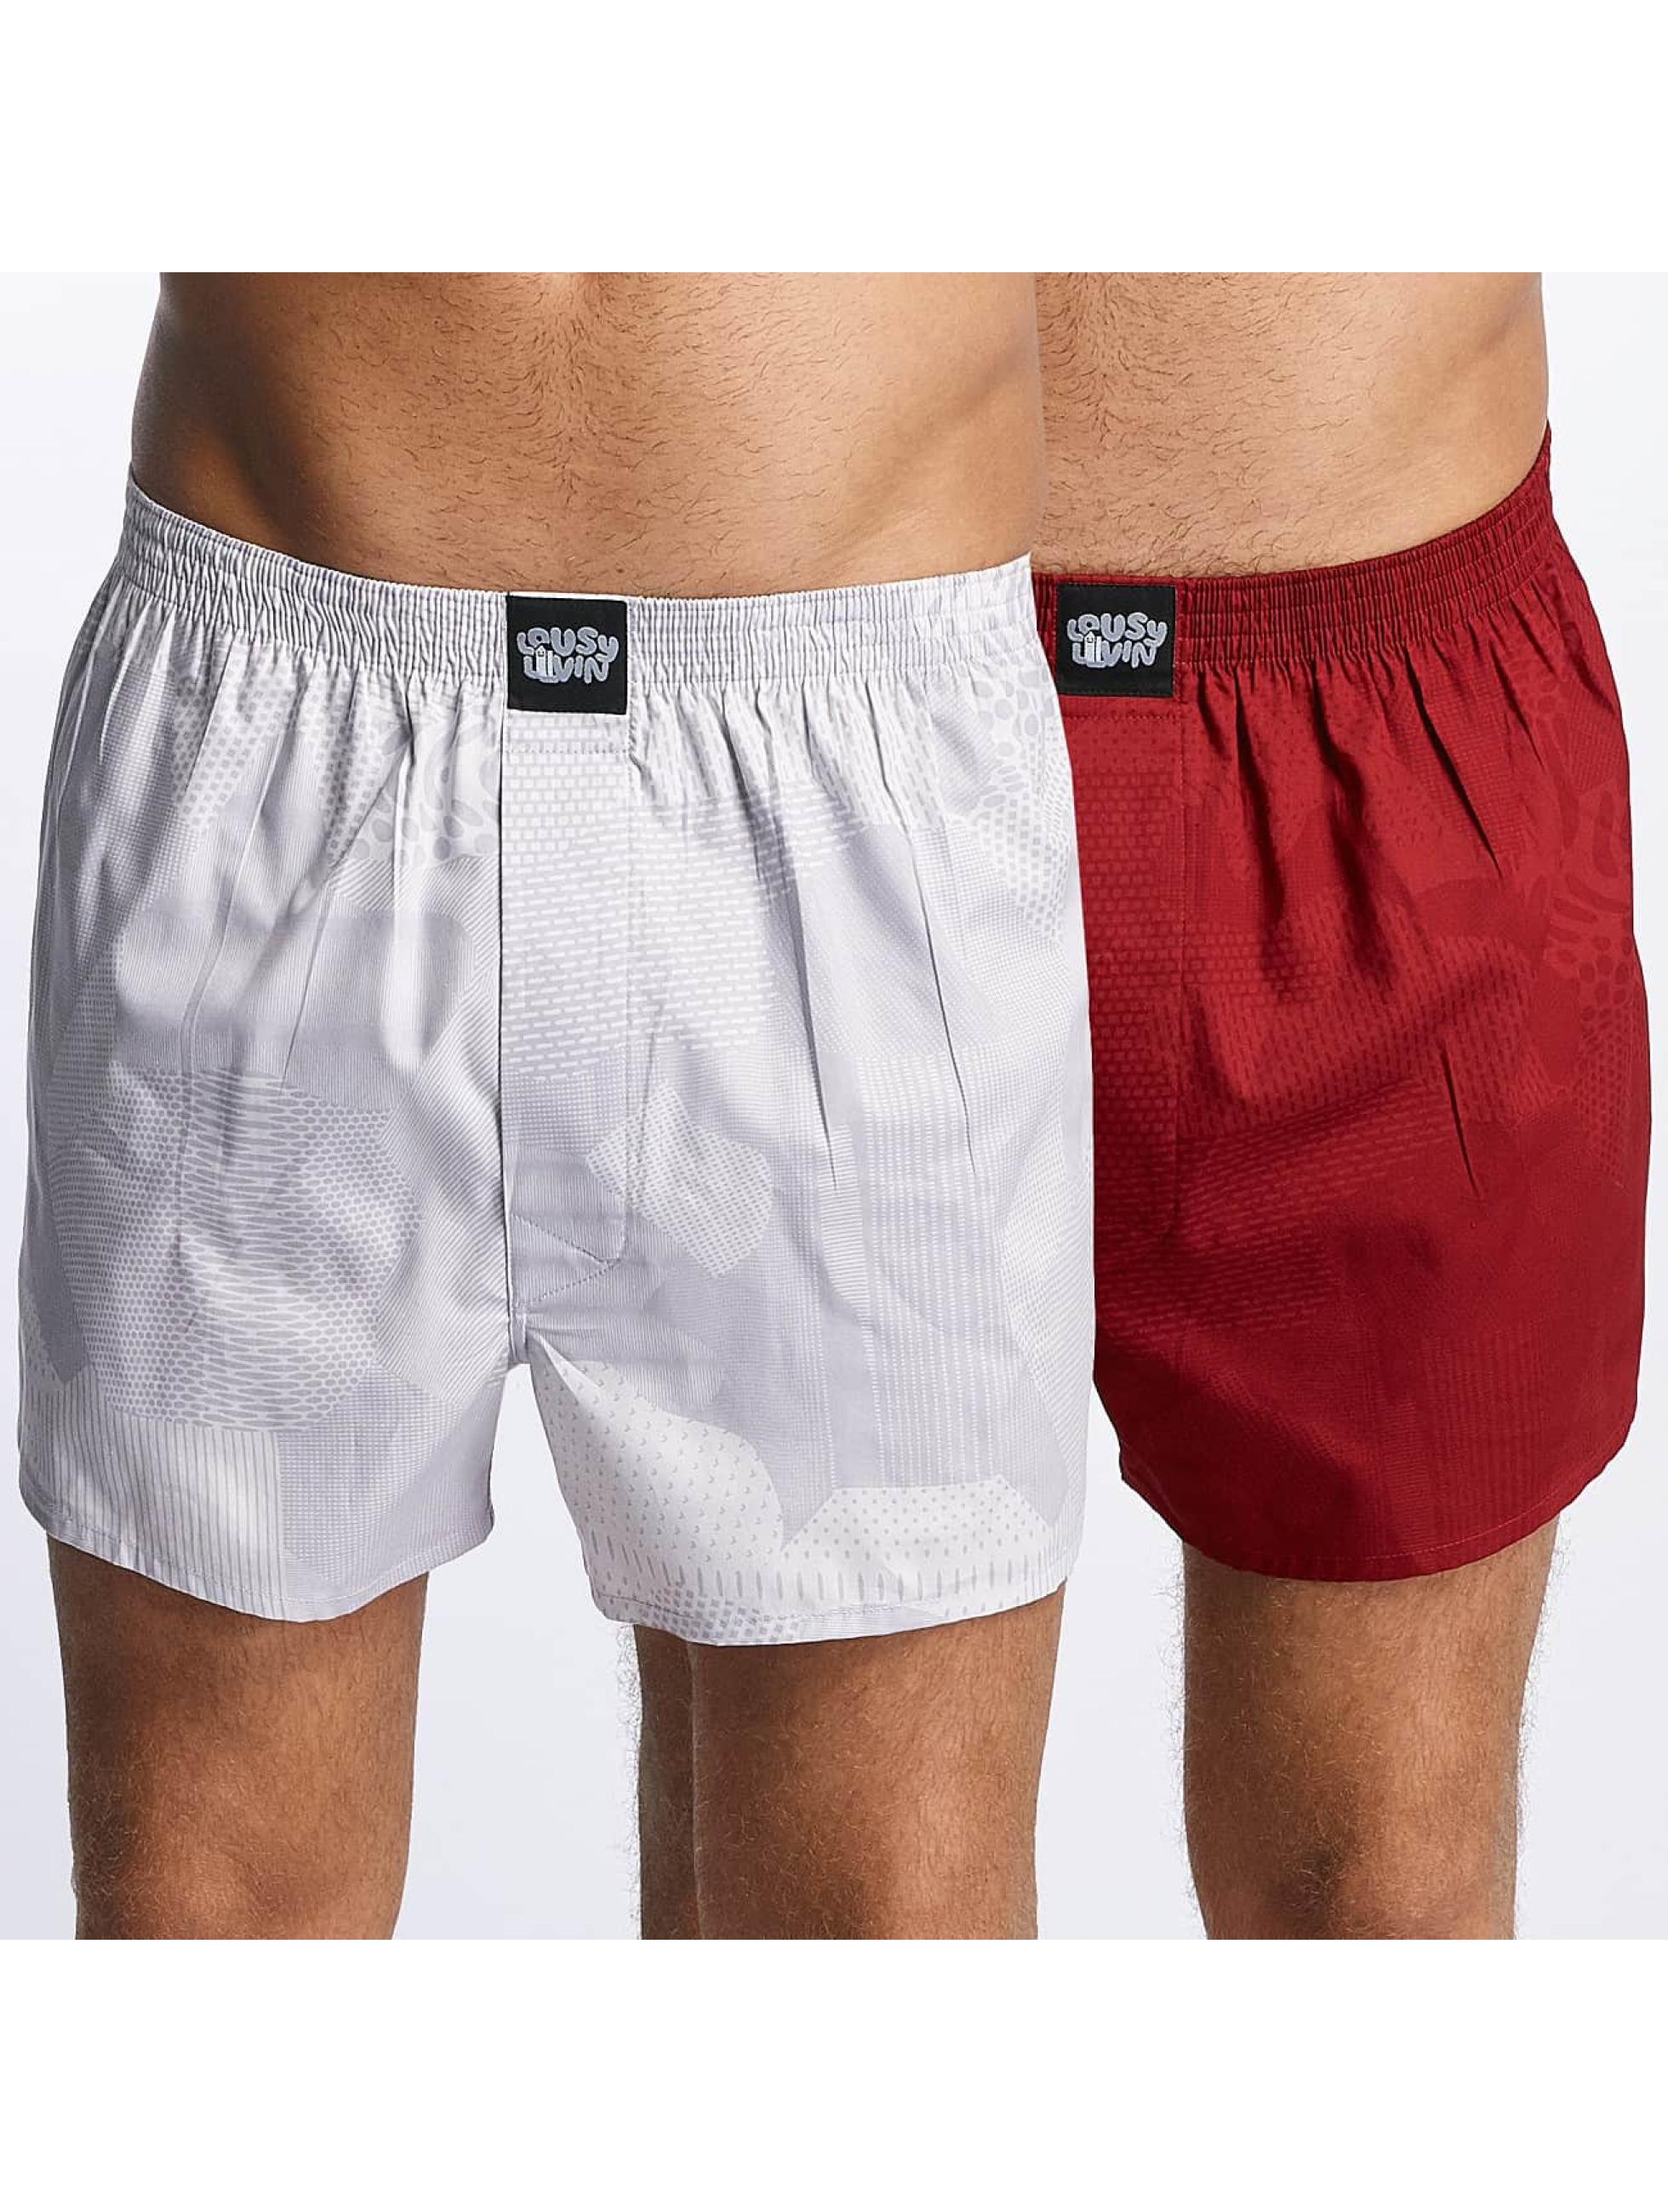 Lousy Livin boxershorts Lousy 2 Pack rood